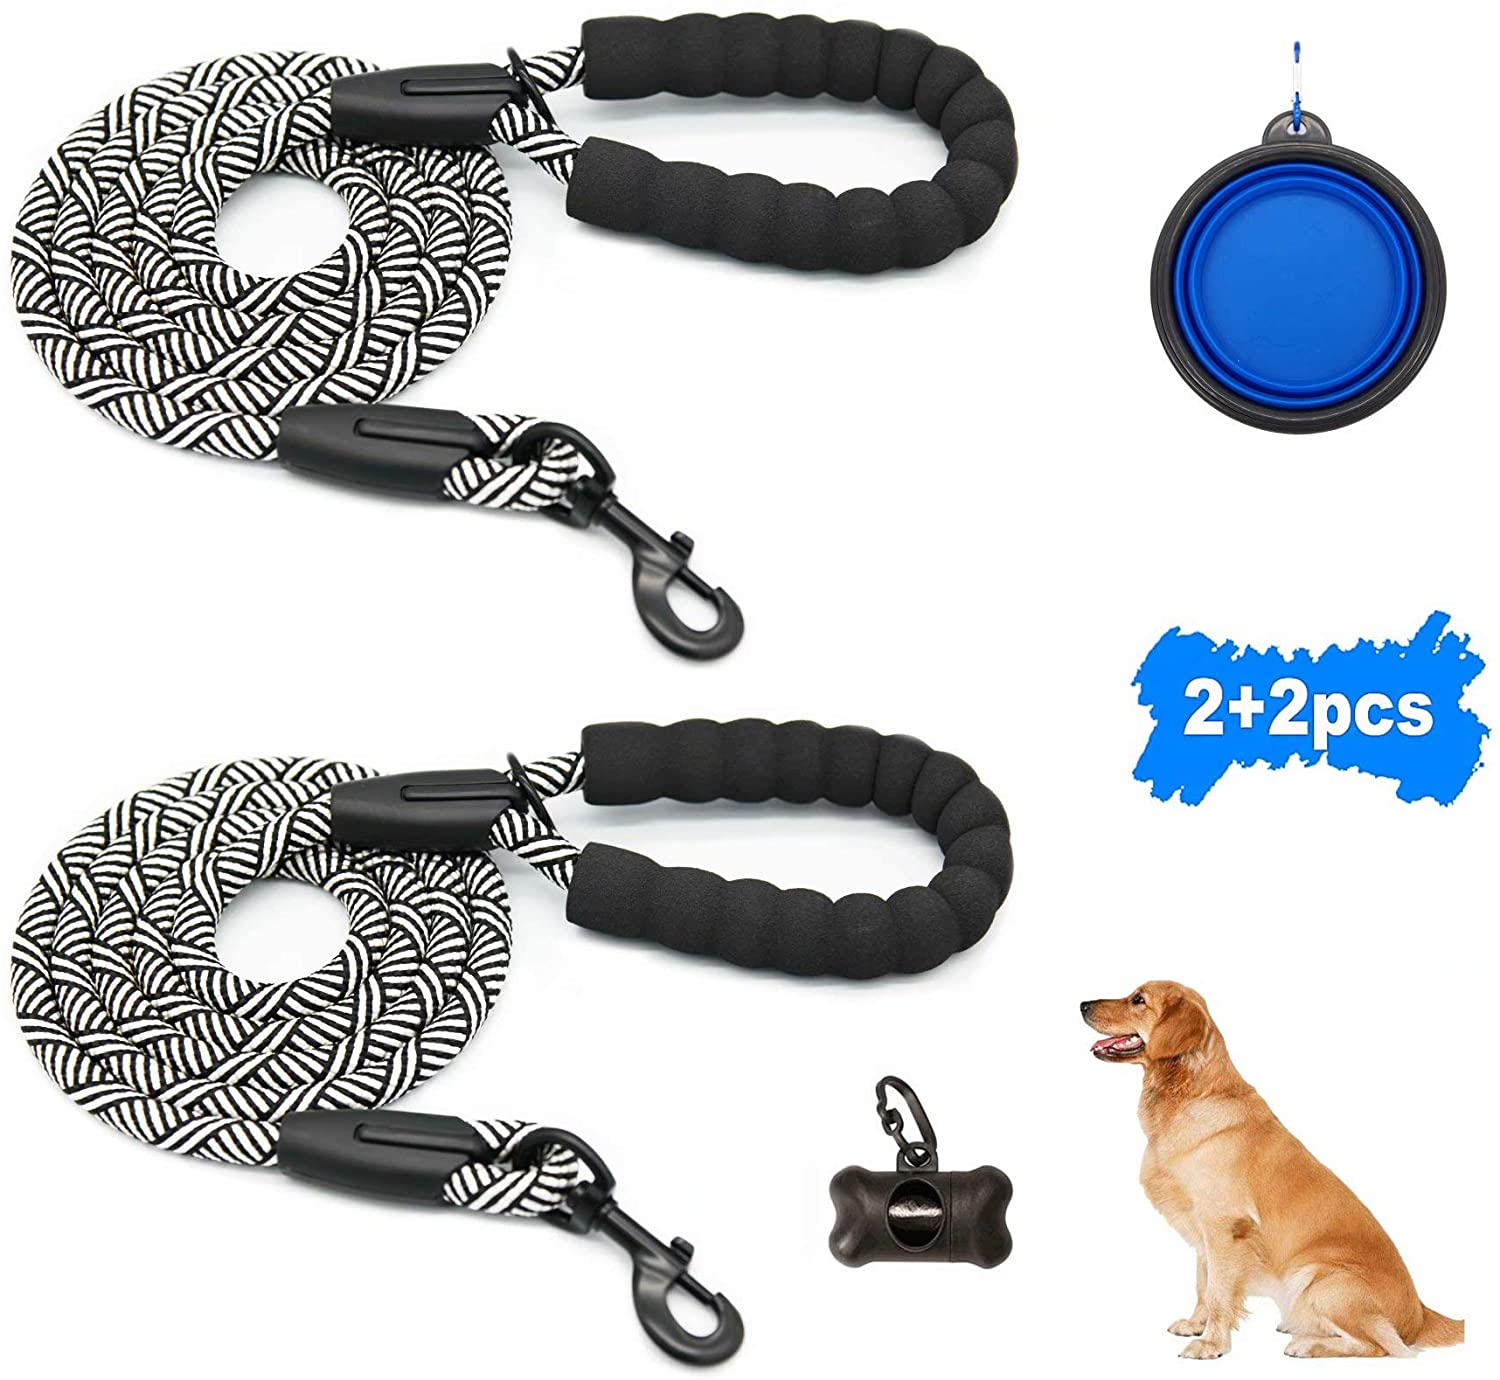 Dibite Dog Leashes Heavy Duty Strong Leash for Large Medium Dogs Training Walking Hiking with Portable Dog Bowl and Poop Bag Dispenser